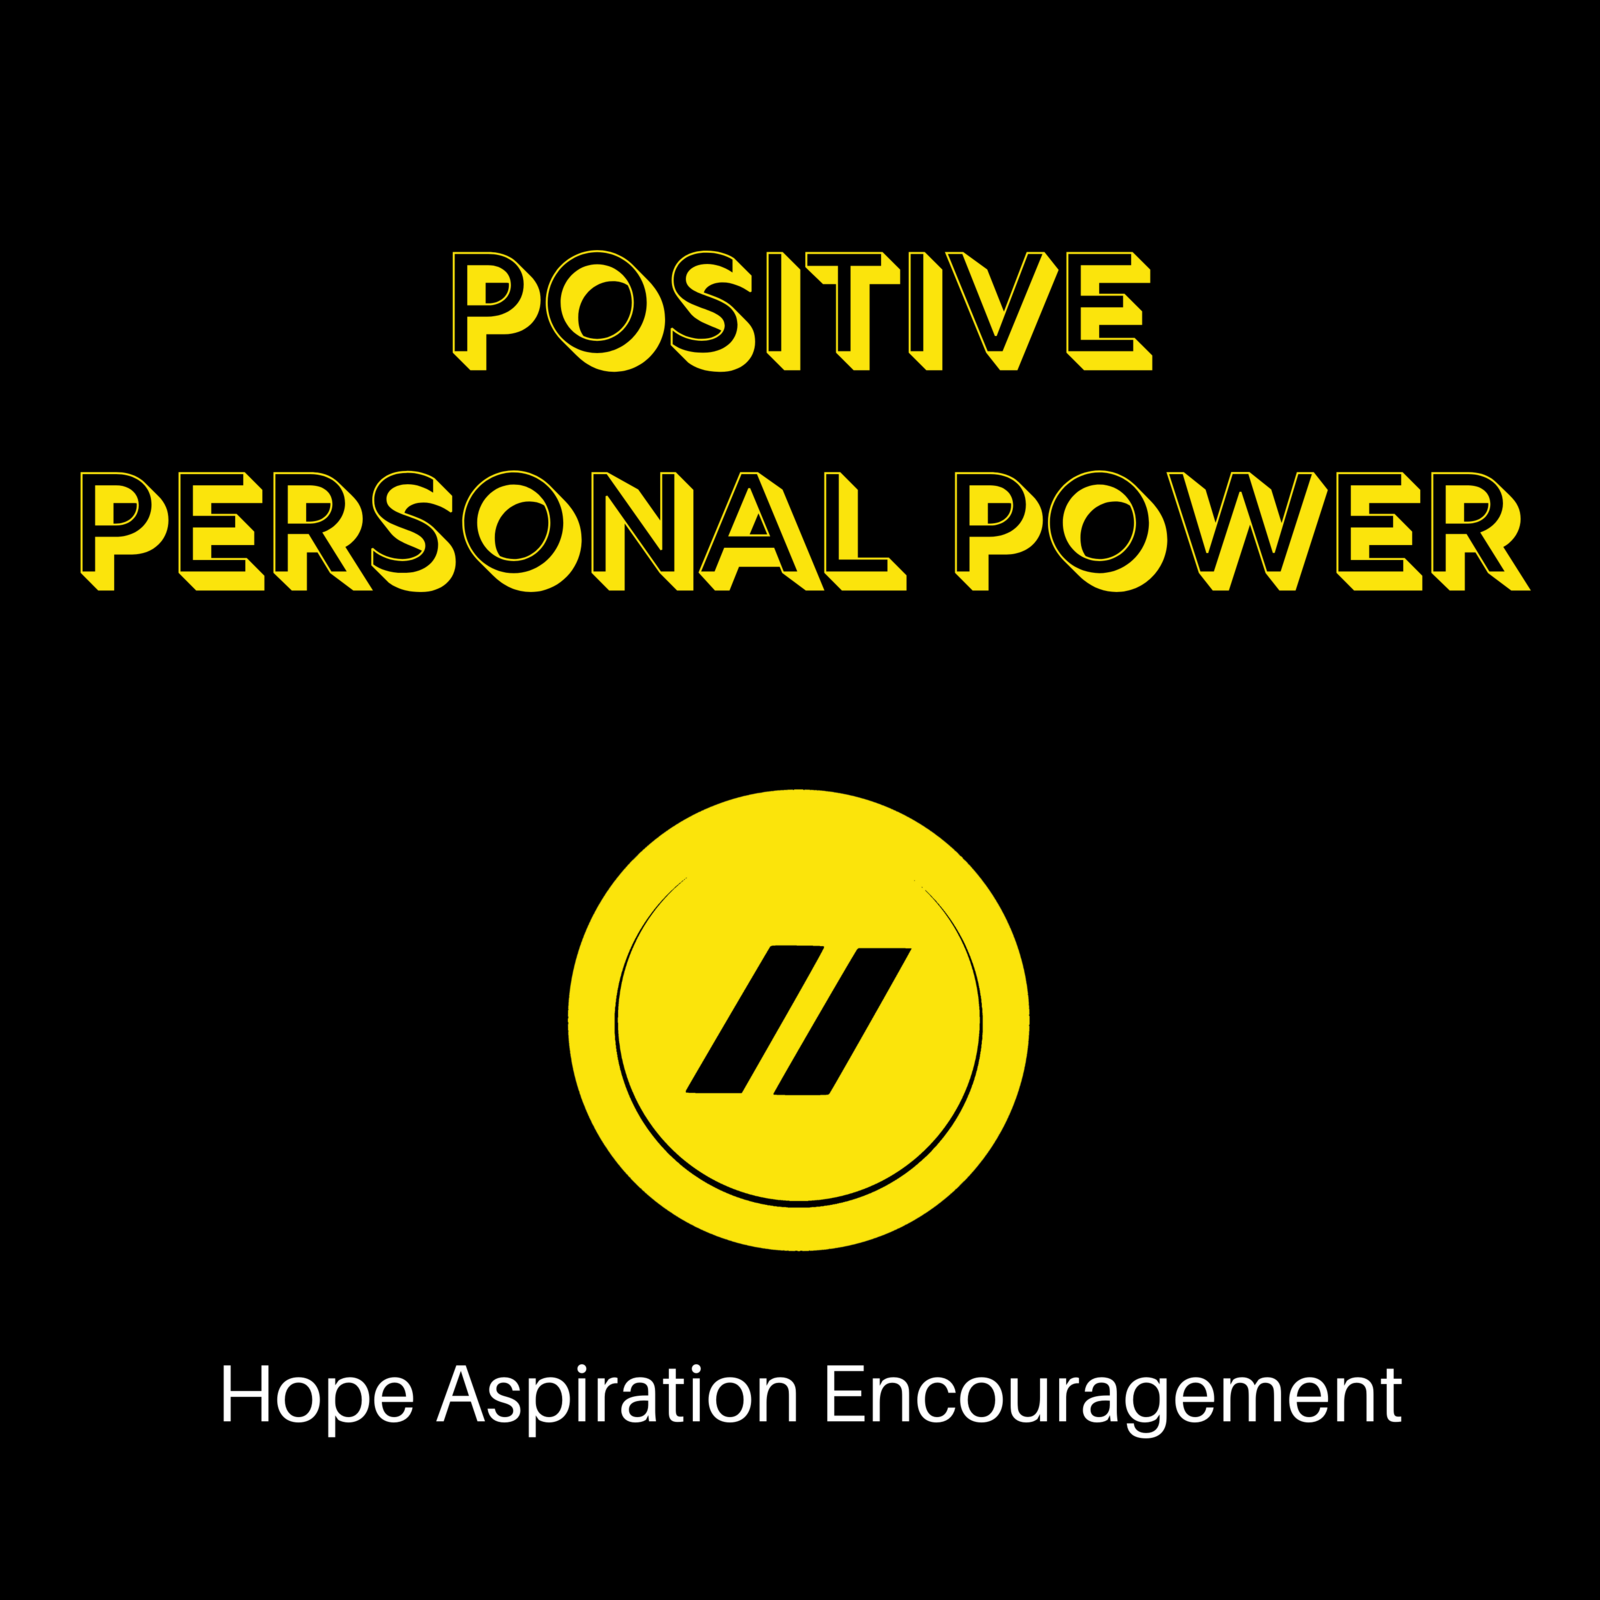 Positive Personal Power